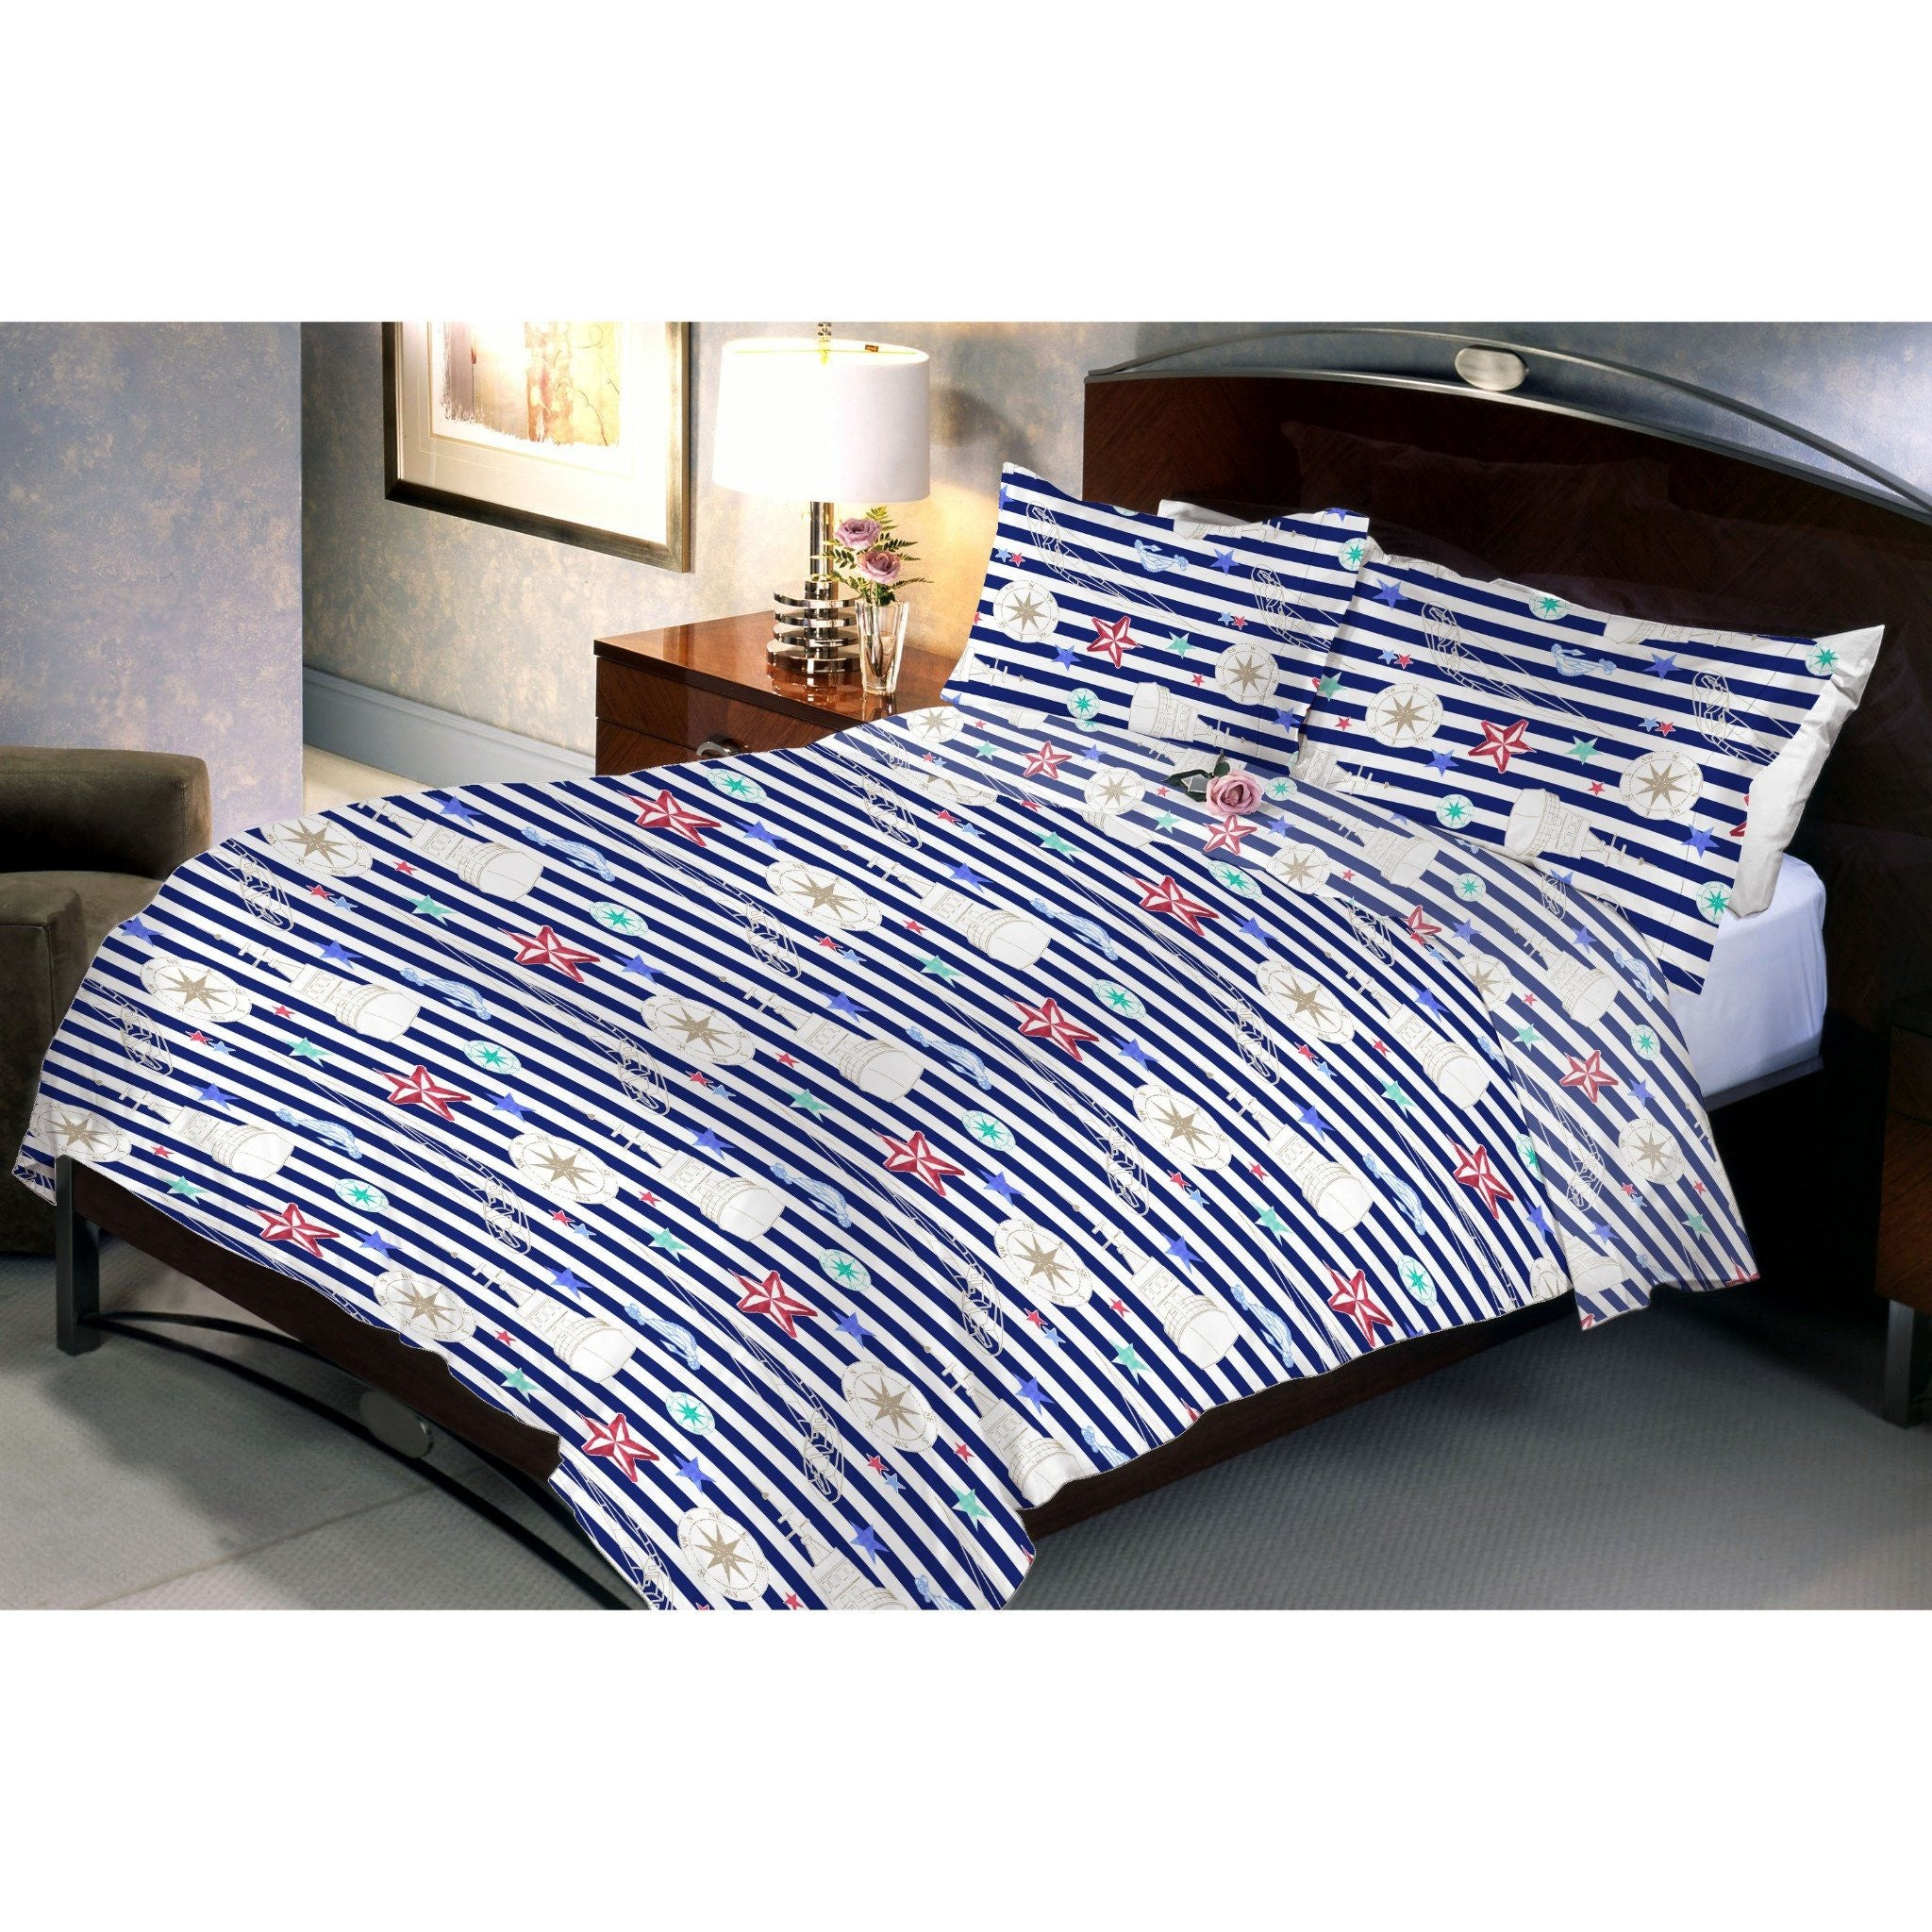 Zebra Queen Size Bedsheet With 2 Pillow Cover - Über Urban Bedsheet